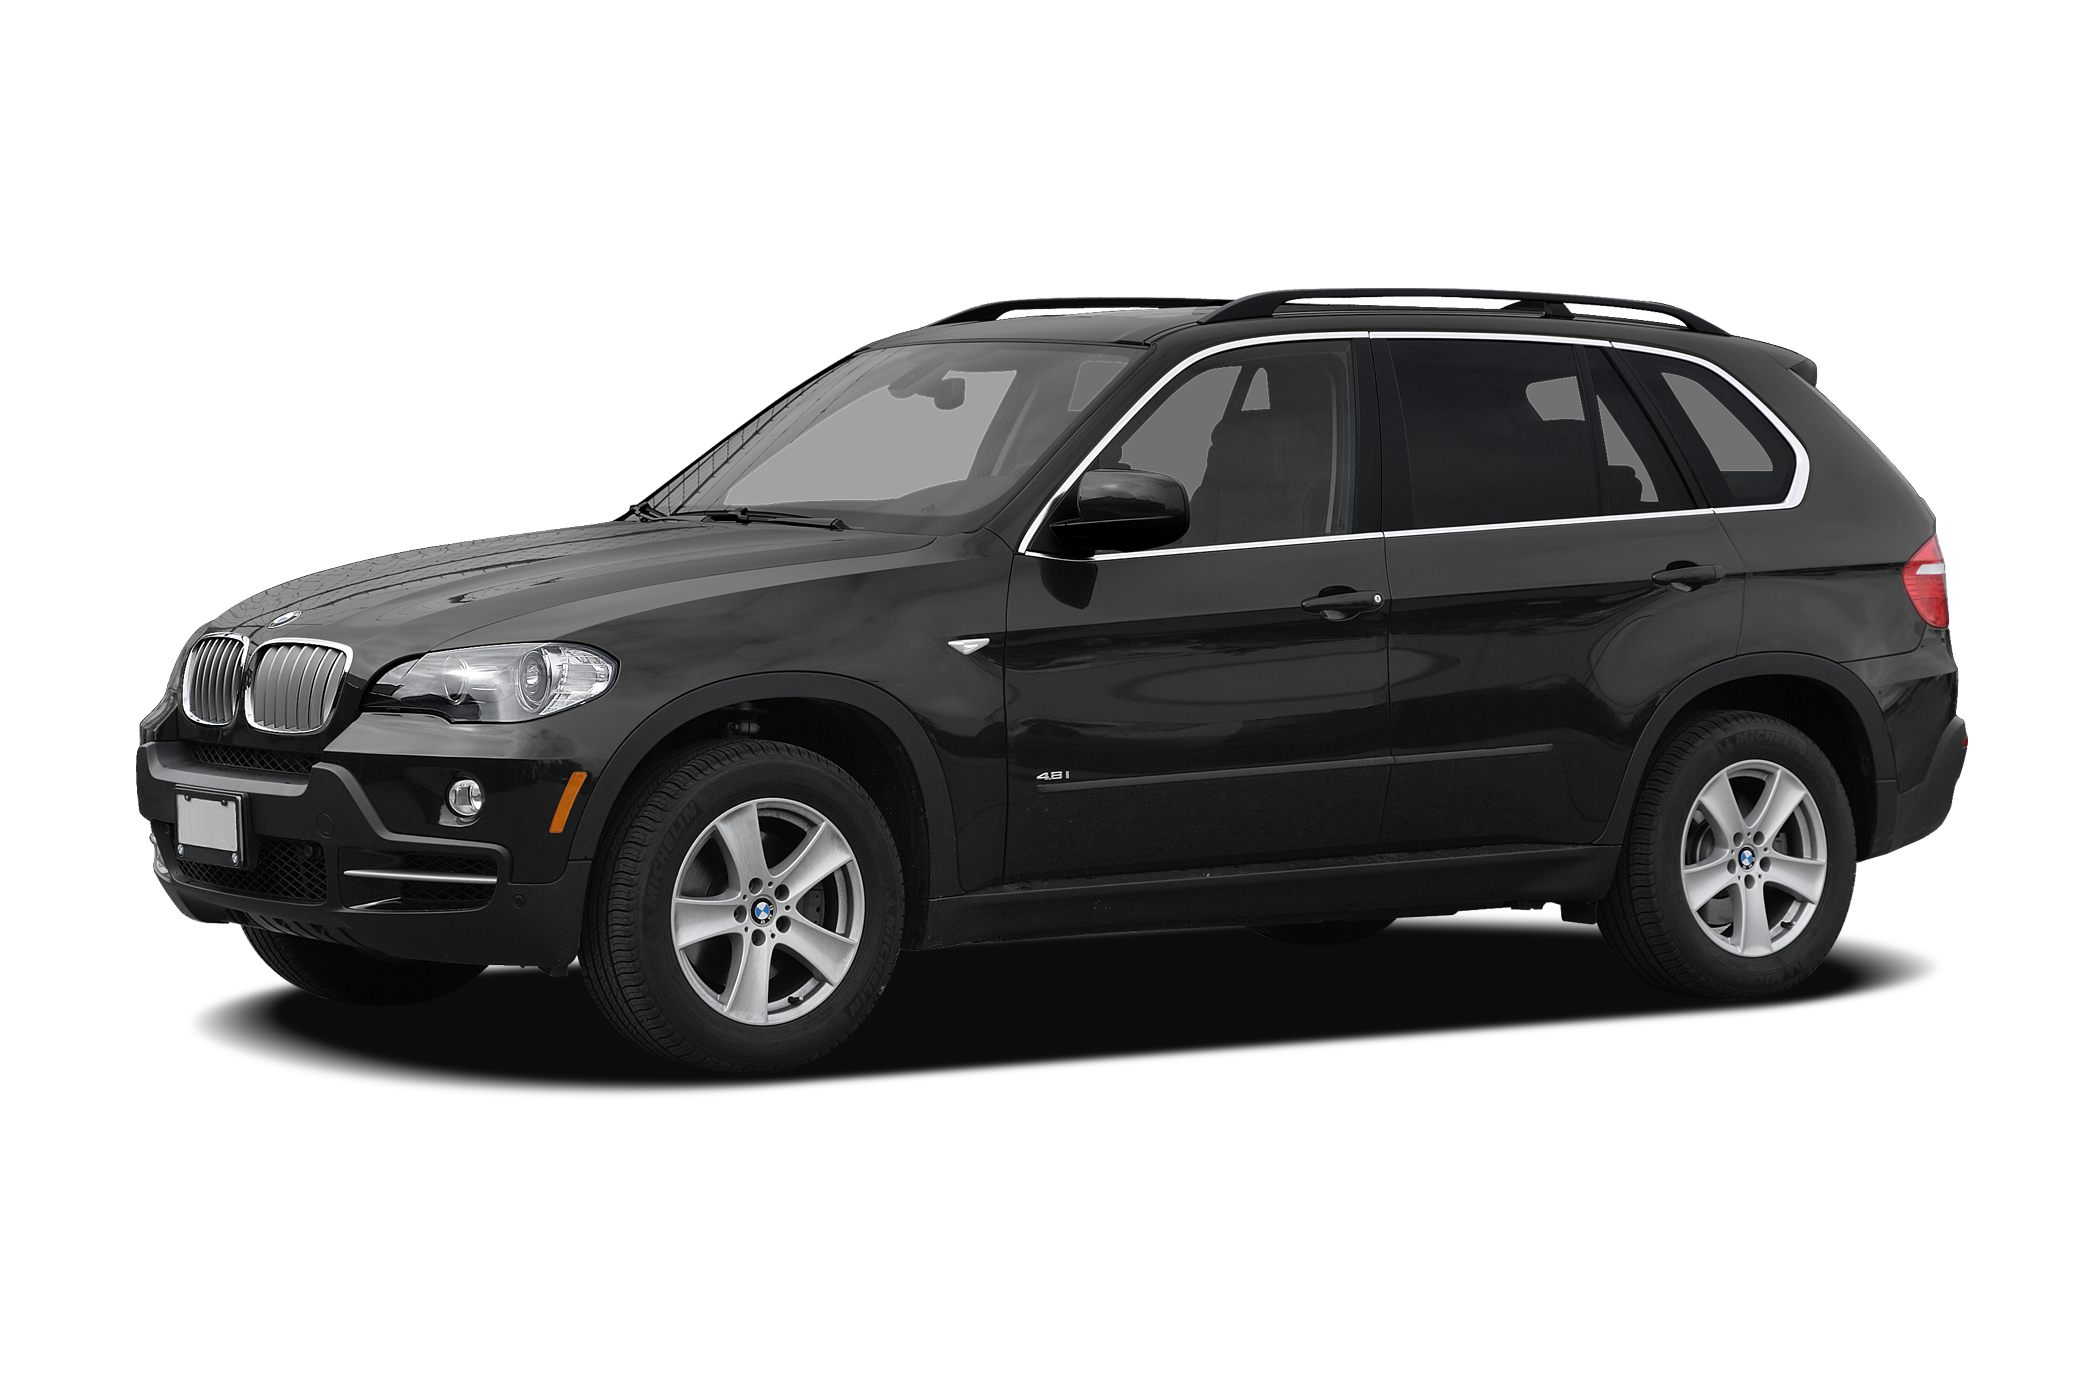 2007 BMW X5 3.0si SUV for sale in Worcester for $25,500 with 53,516 miles